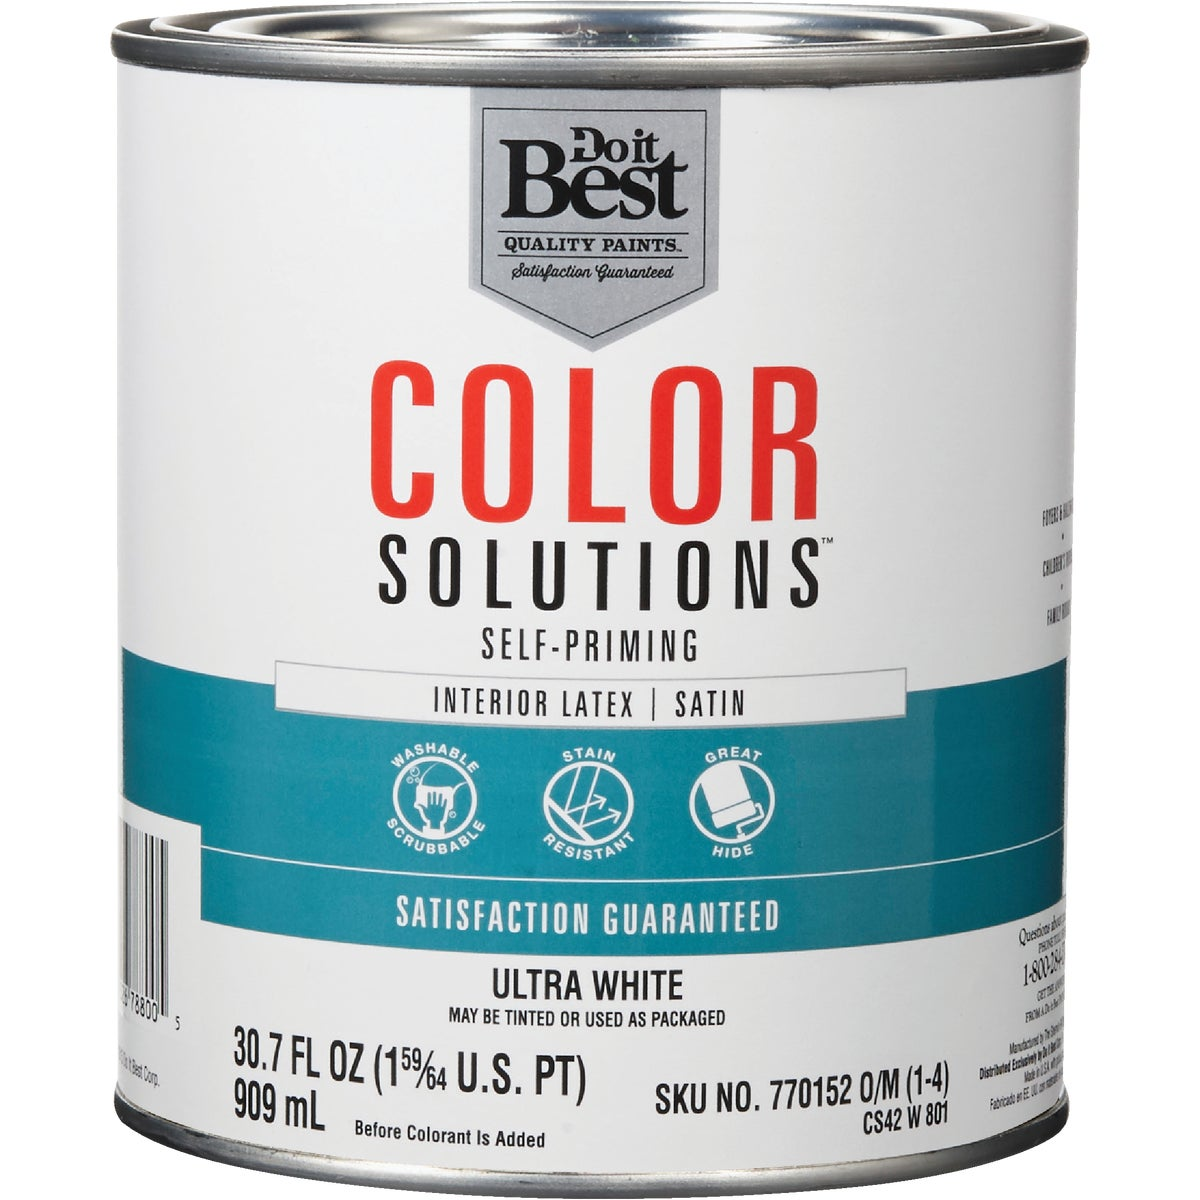 INT SAT ULTRA WHT PAINT - CS42W0801-14 by Do it Best